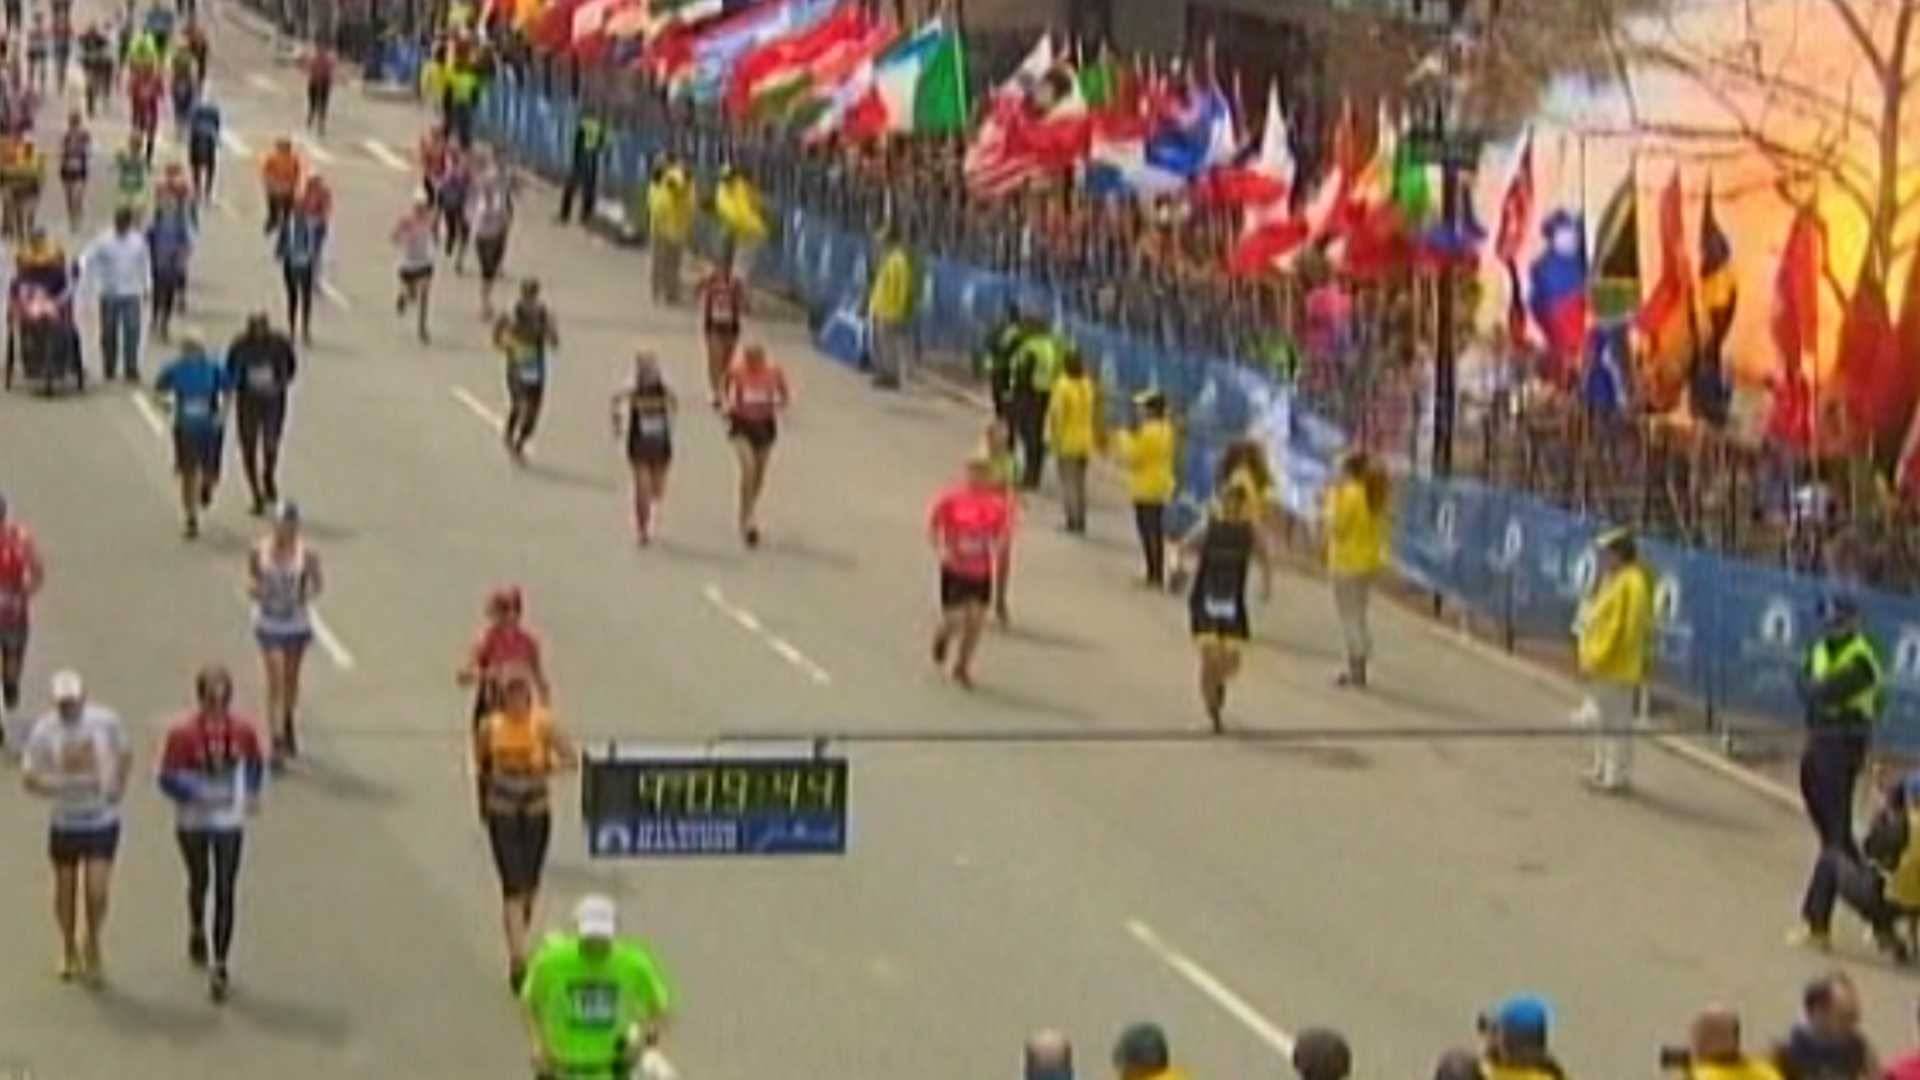 A bomb explodes at the finish line of the Boston Marathon. You can see a fireball at the top-right corner of the photo.